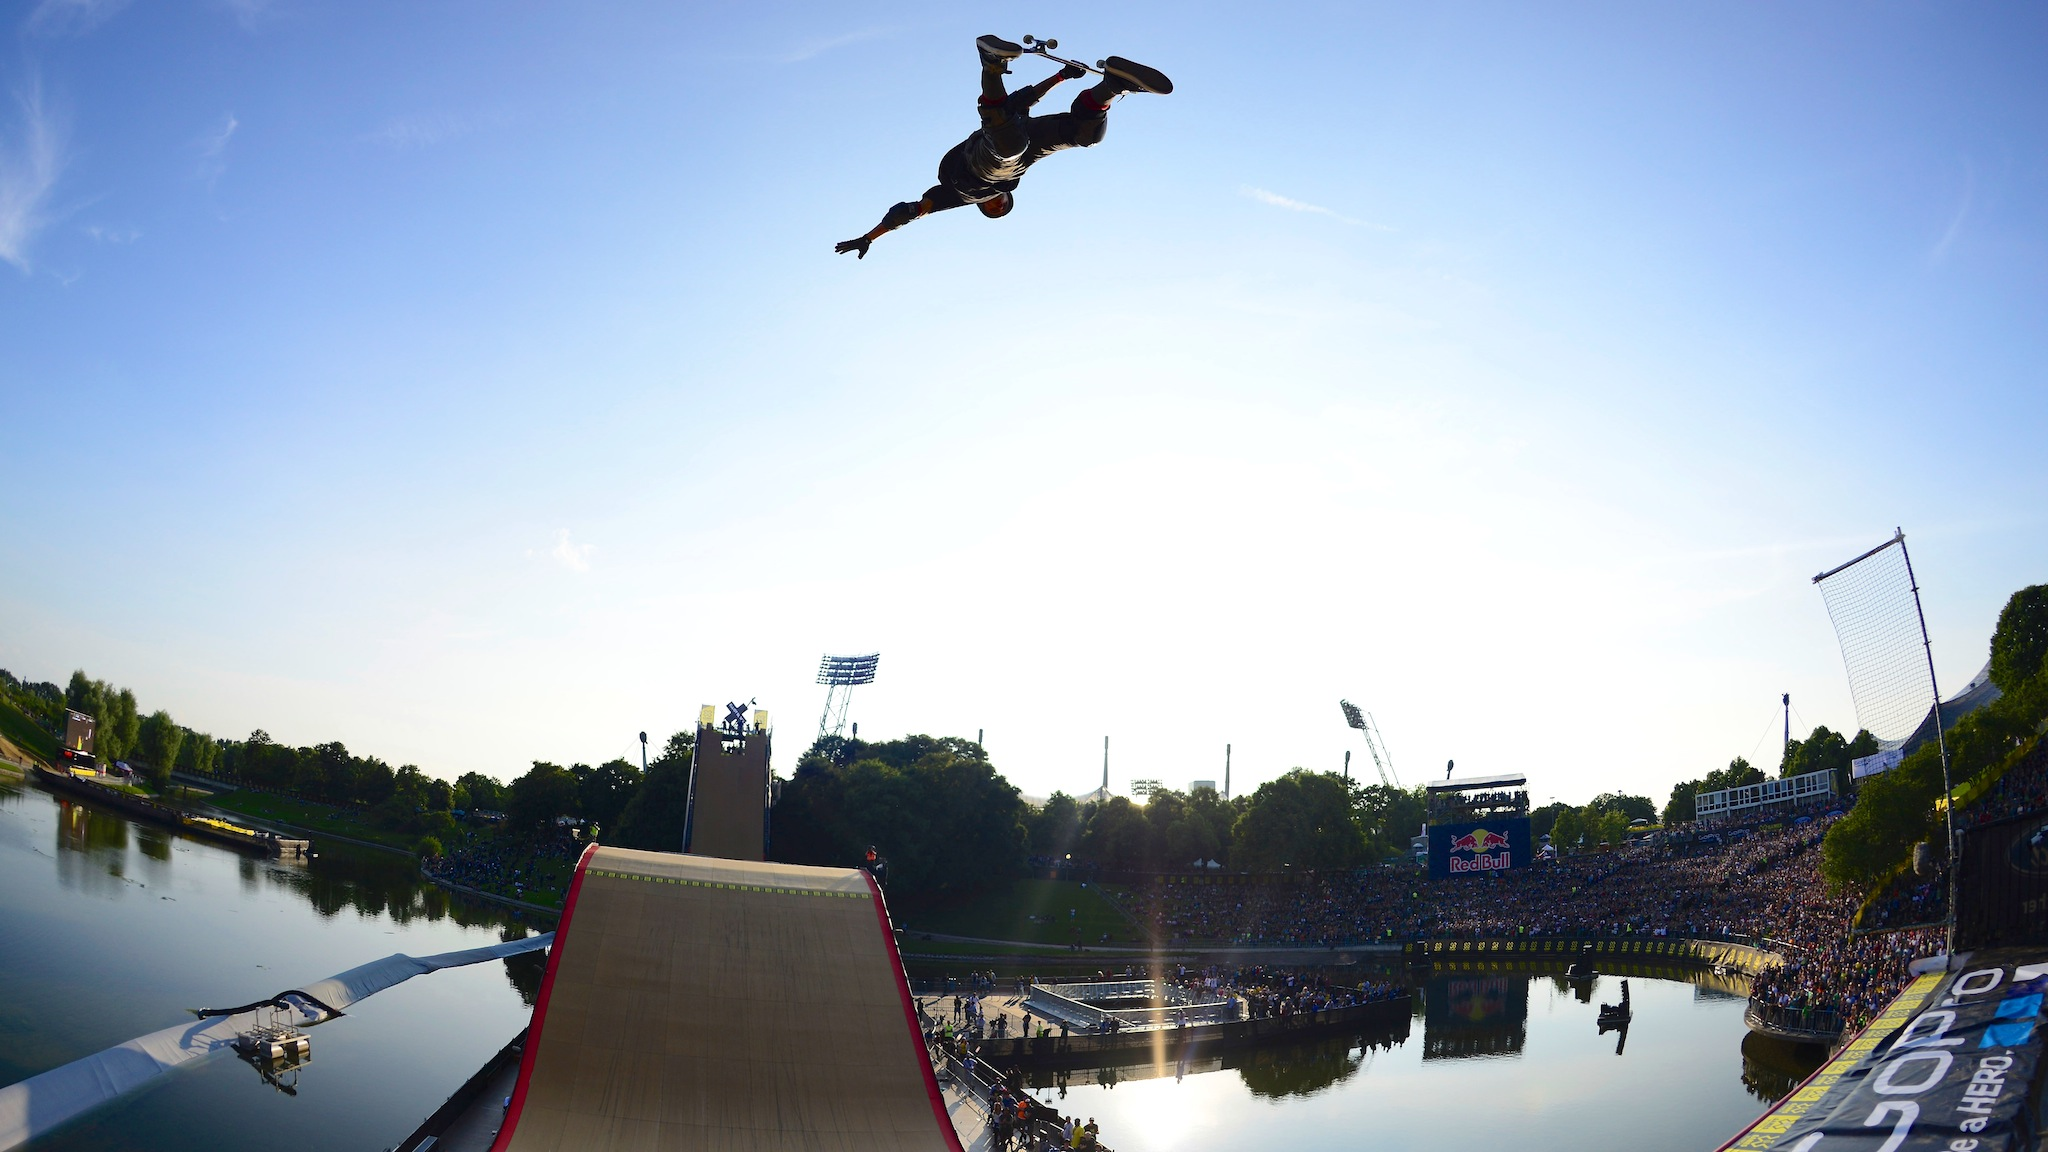 X Games Munich 2013